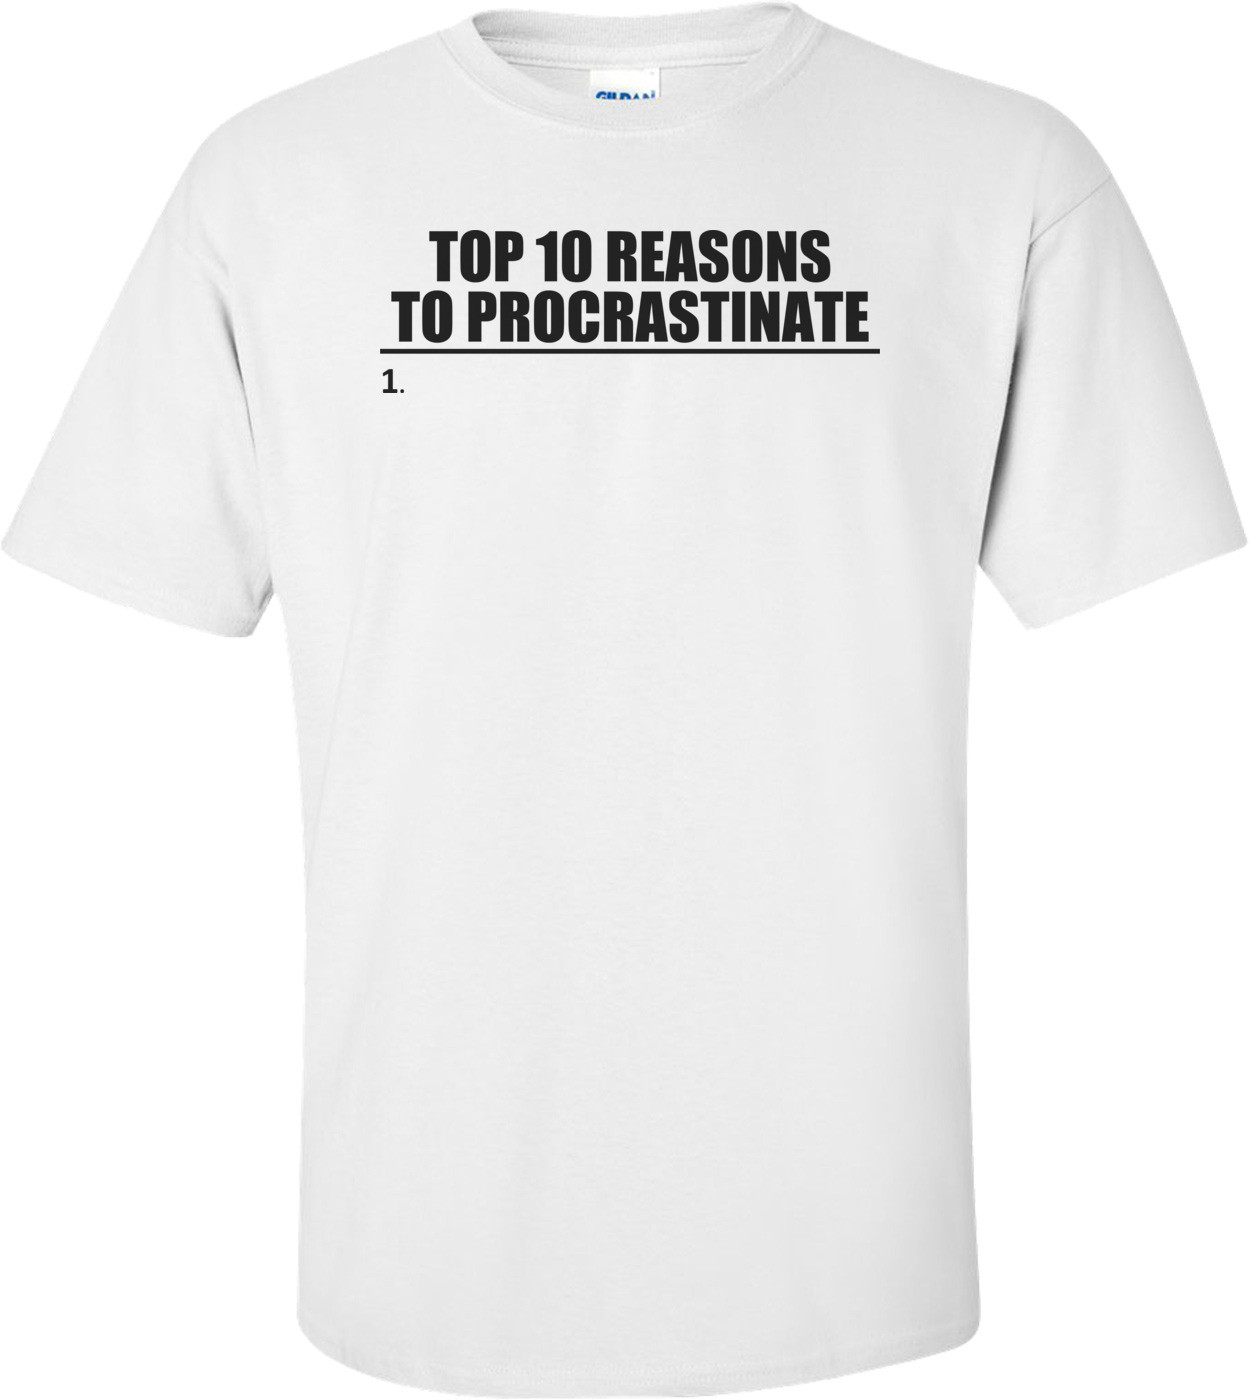 Top 10 Reasons To Procrastinate Funny Shirt